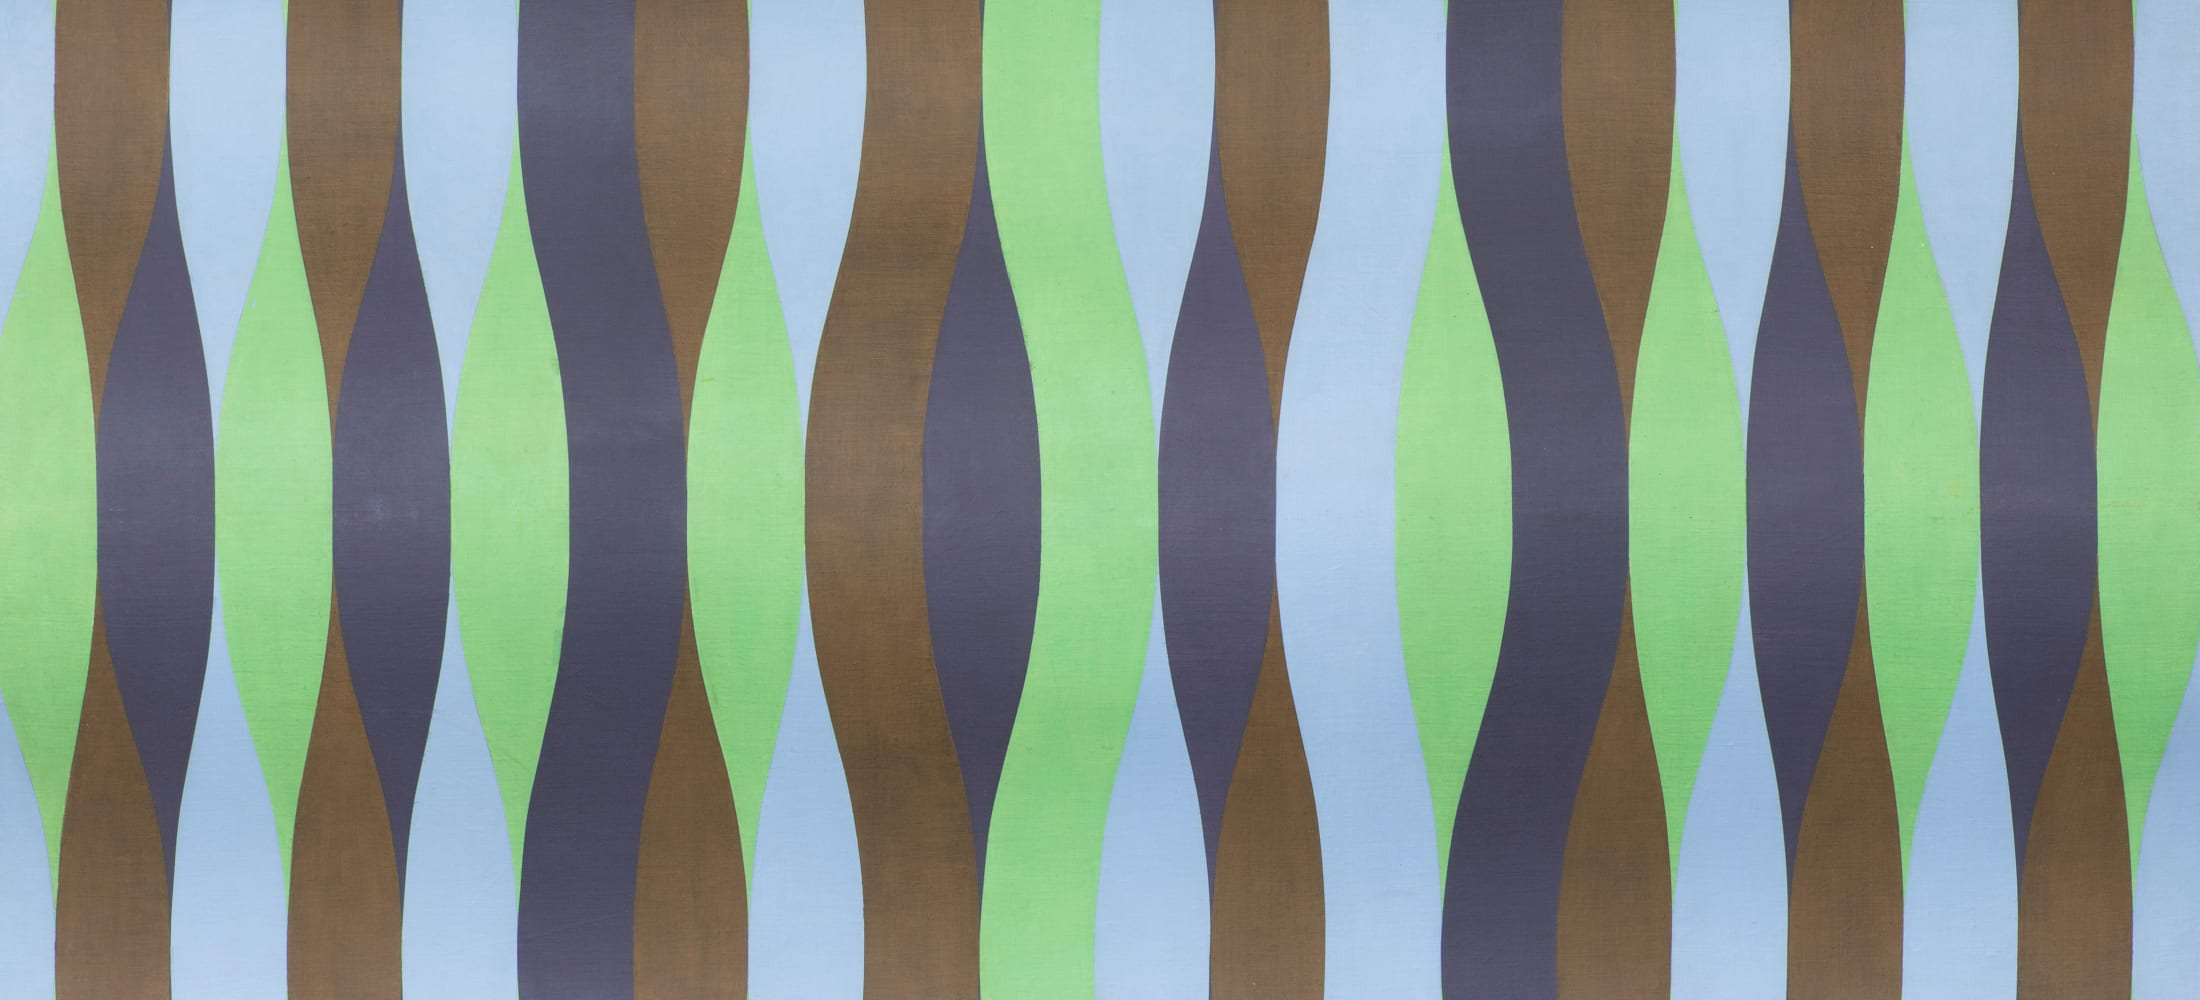 Michael Kidner Love is a Virus From Outer Space